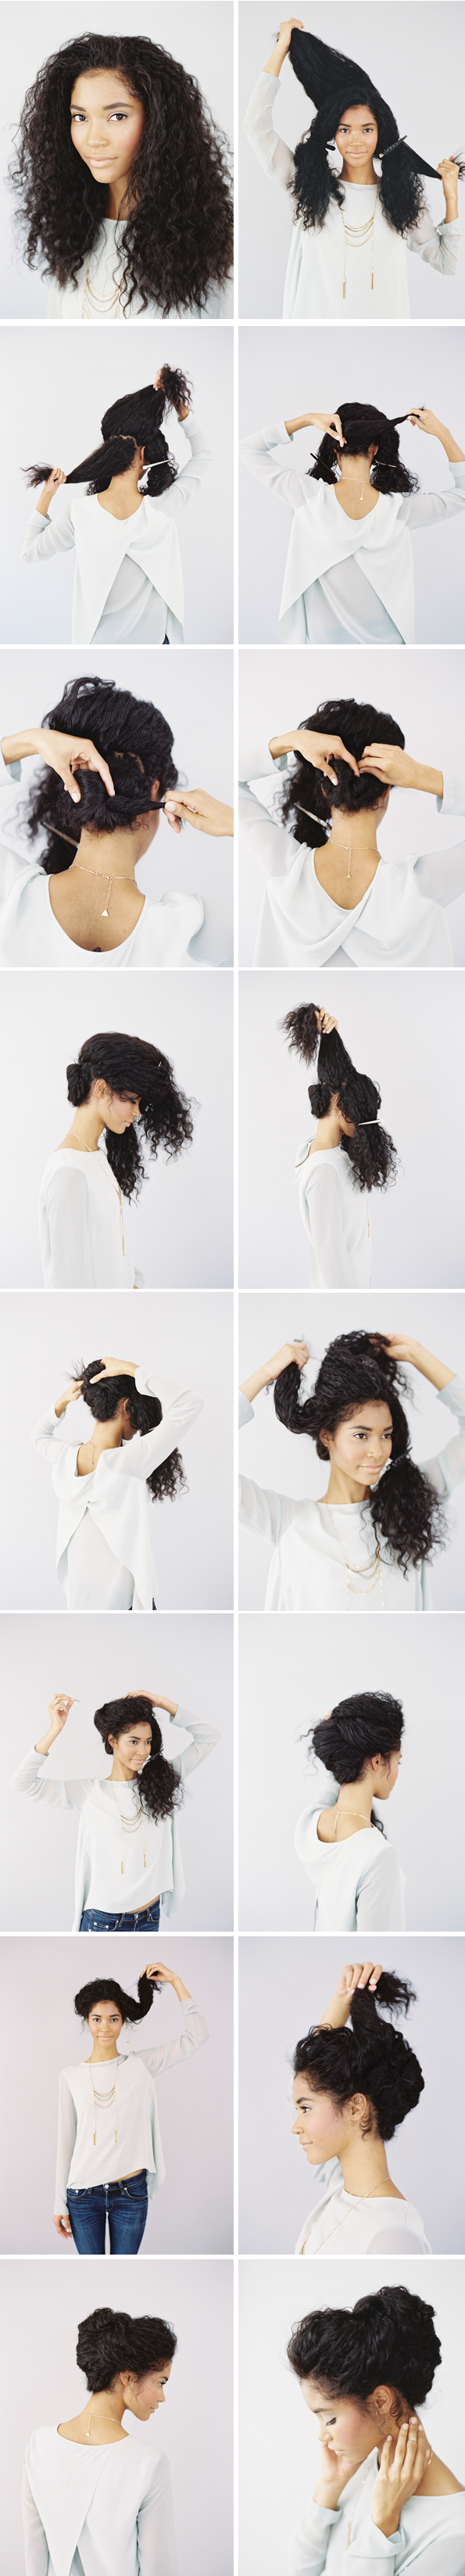 20 Easy Hairstyle Tutorials for Your Everyday Look ...